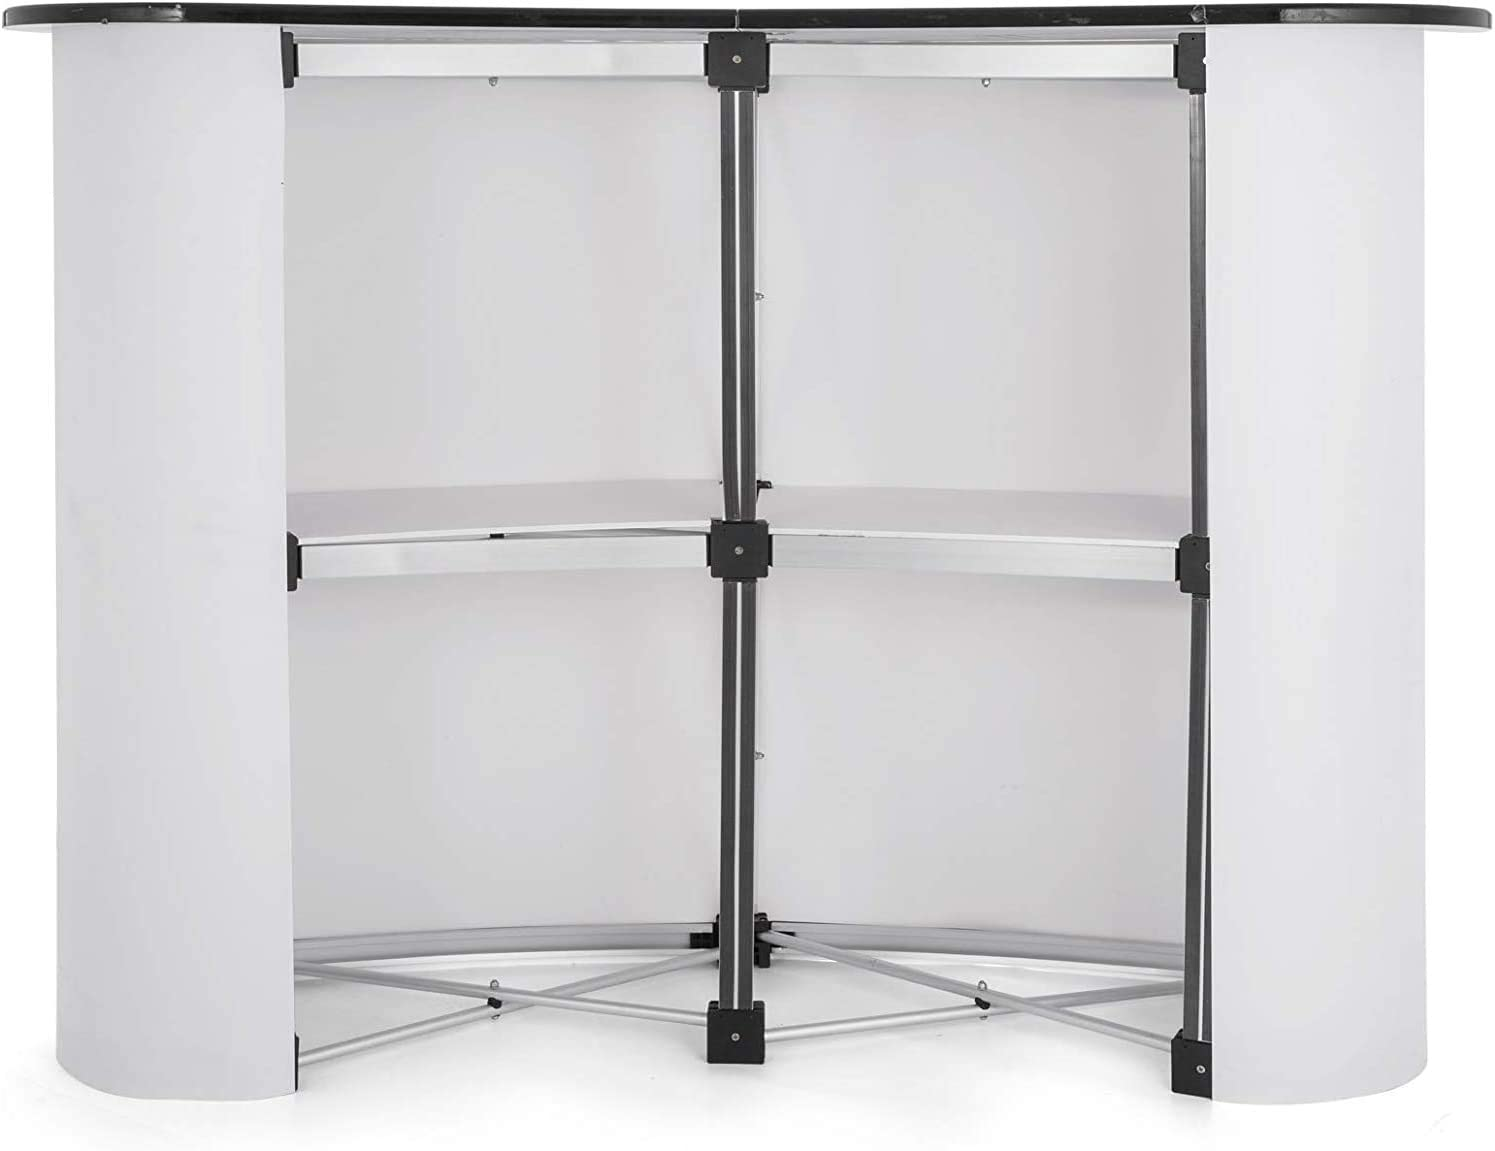 Tension Frame Display Trade Show Pop Up Table High Counter Portable Speech Stand Promotion Foldable Podium Table Stand